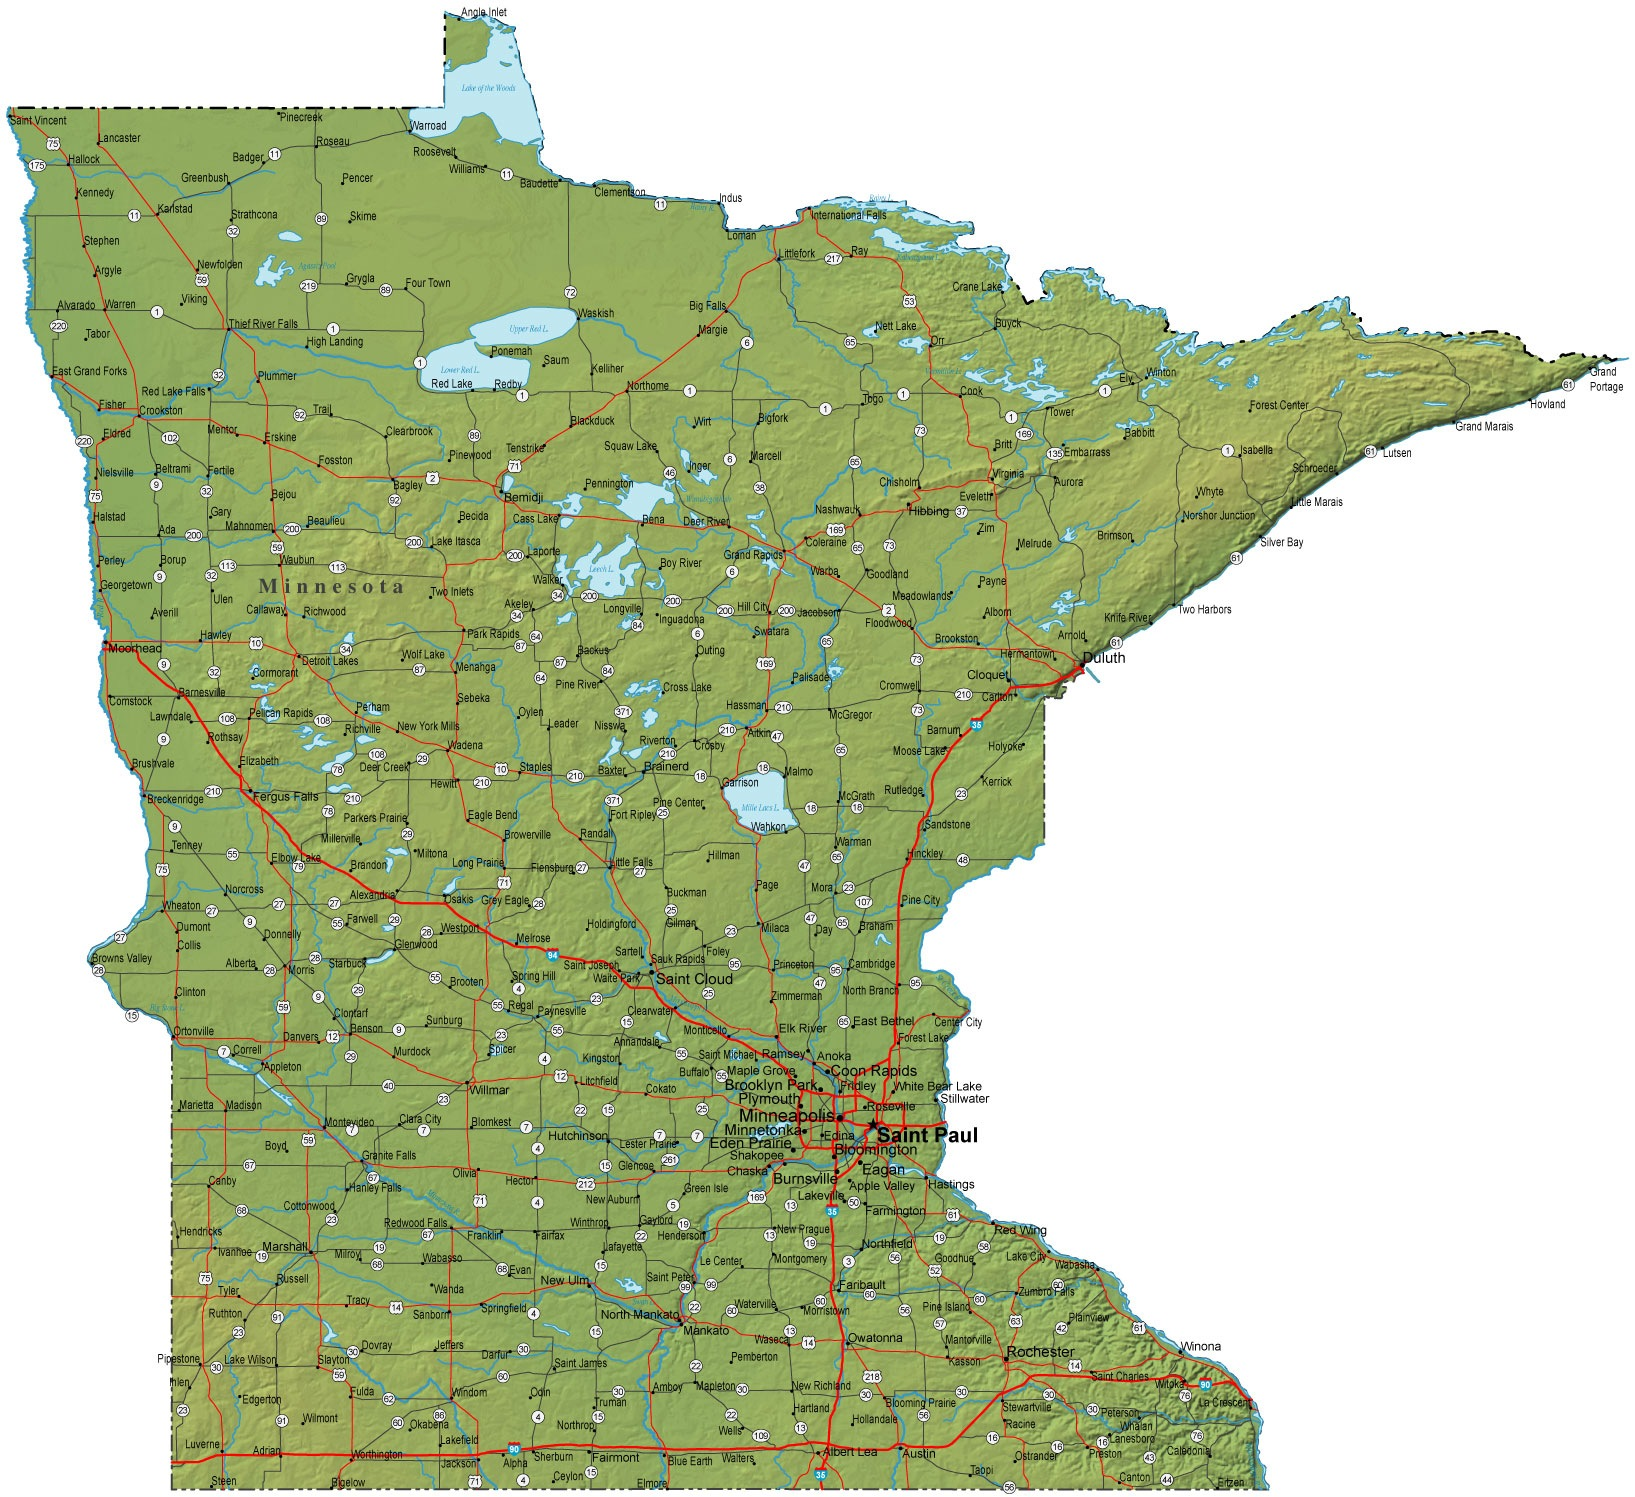 the-map-of-minnesota-state-for-down